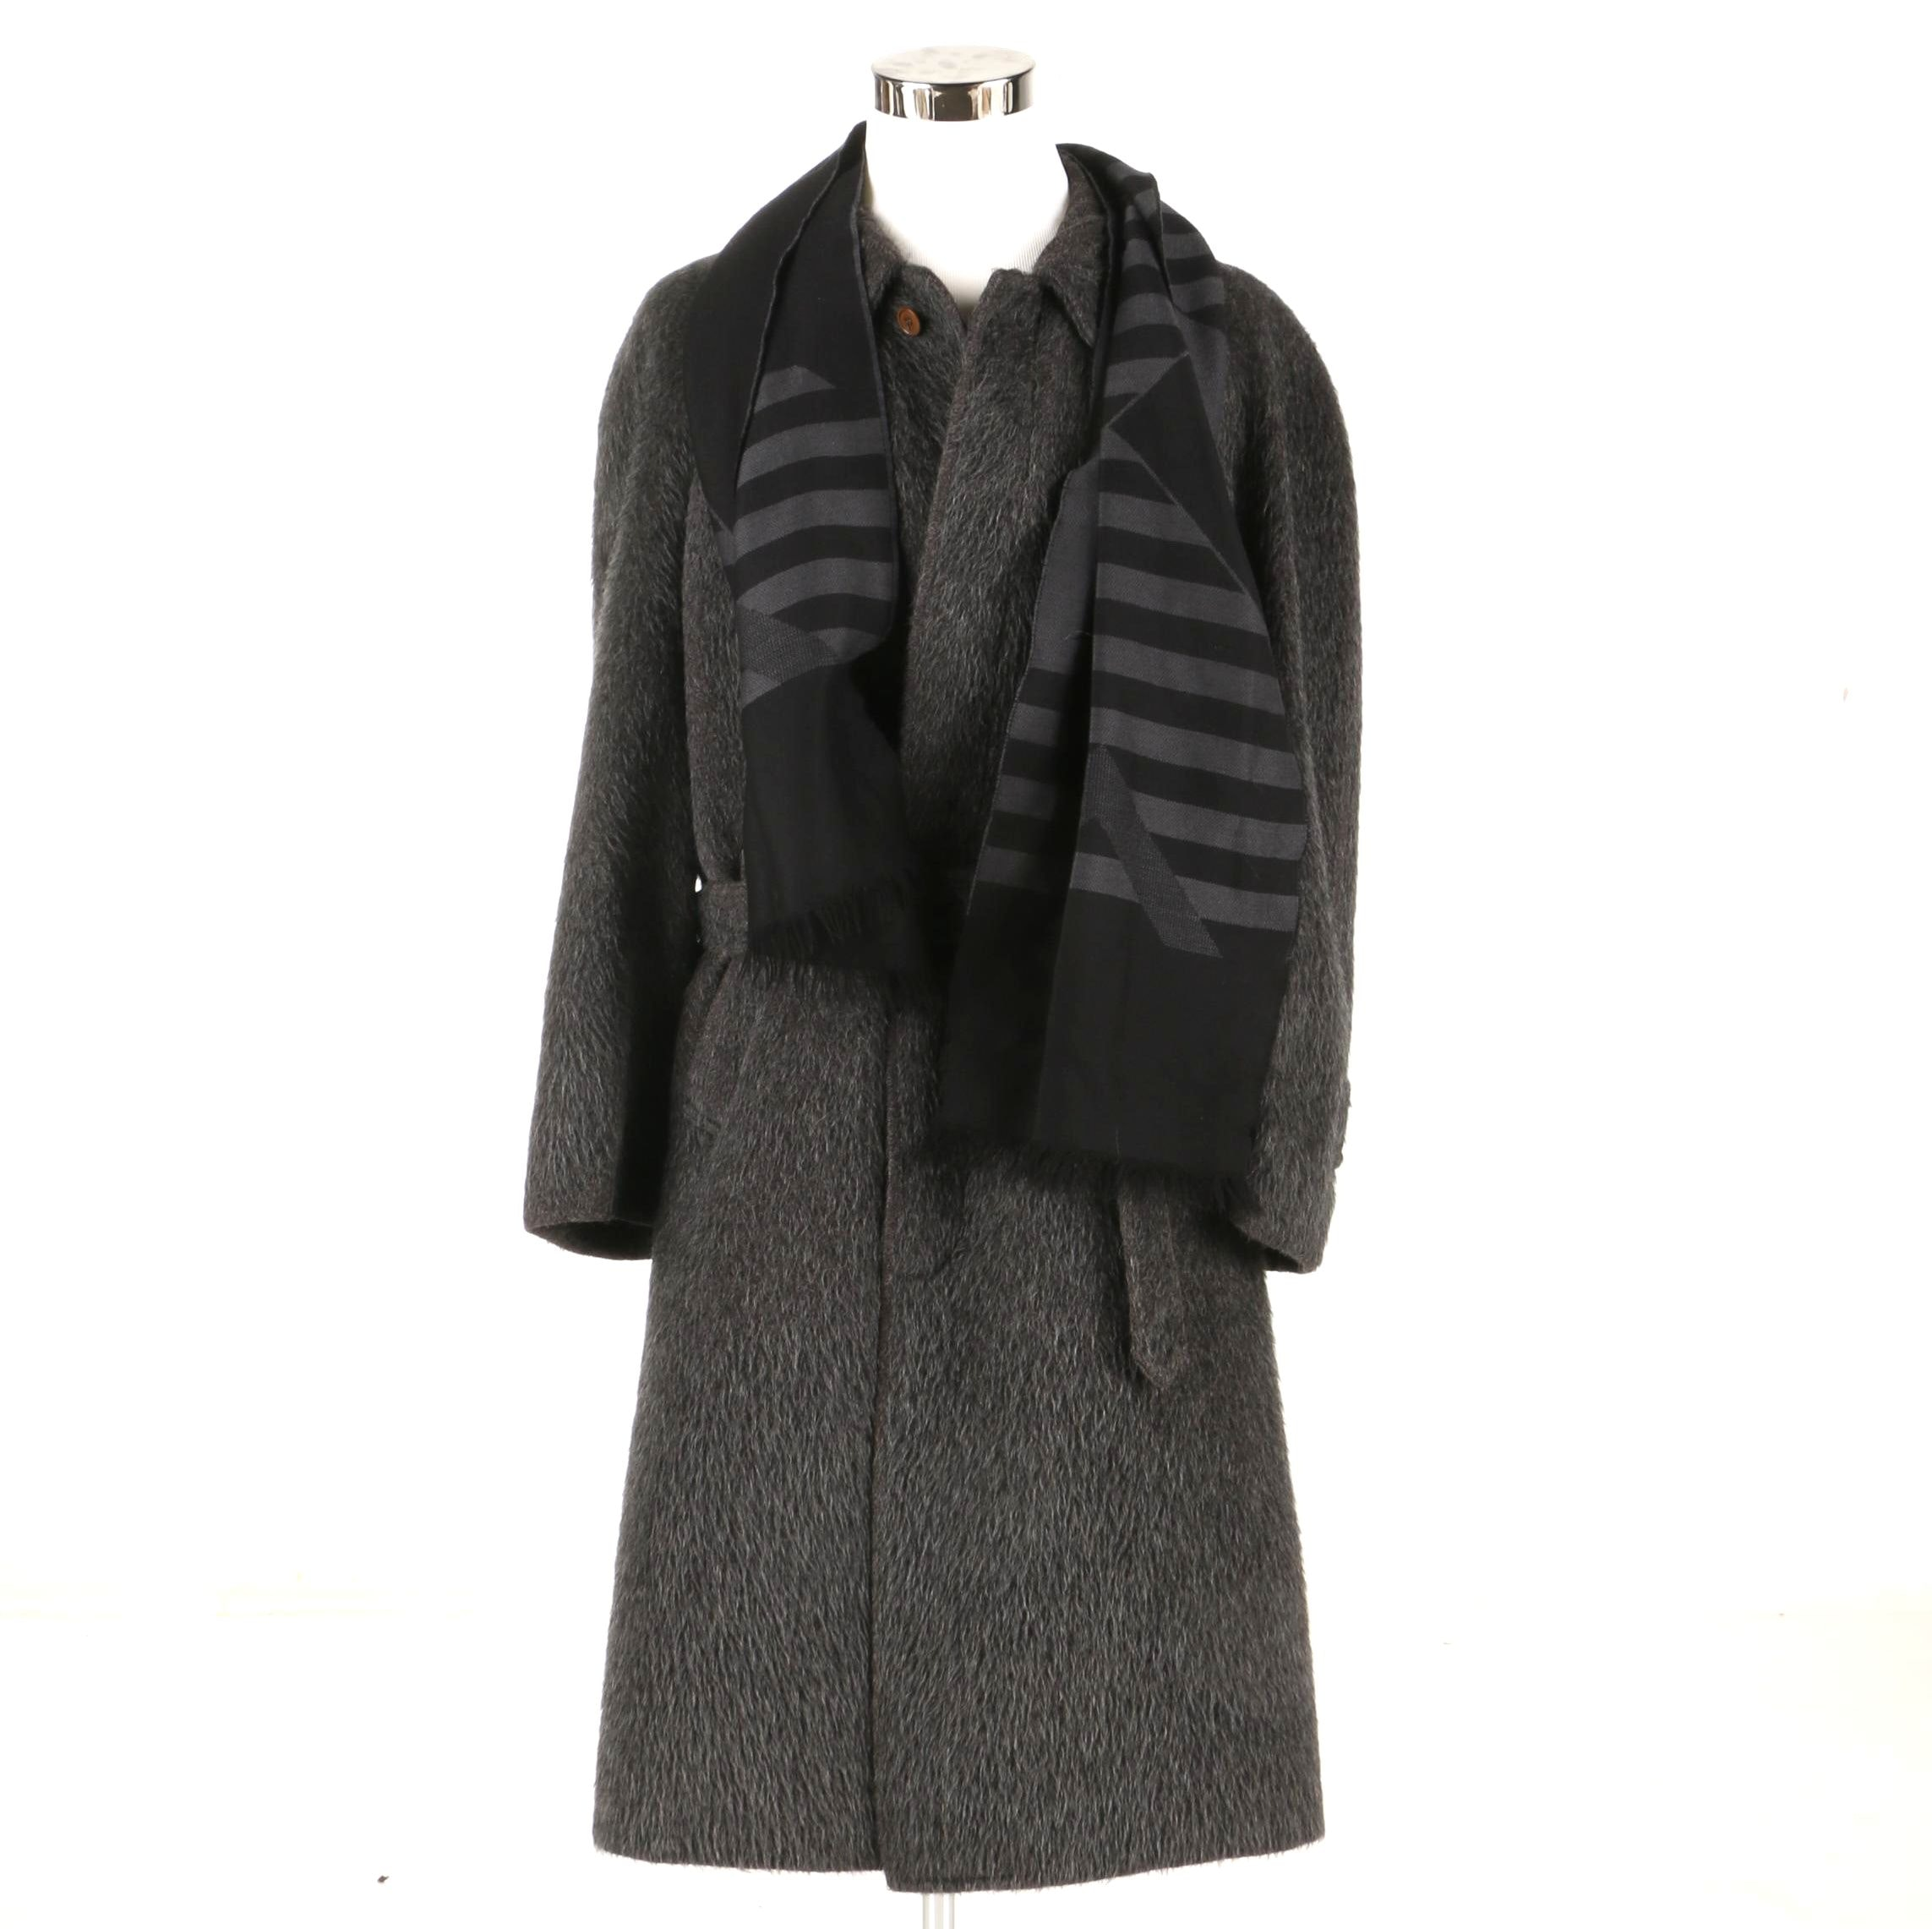 Benvenuto Cellini Men's Alpaca Coat With Scarf